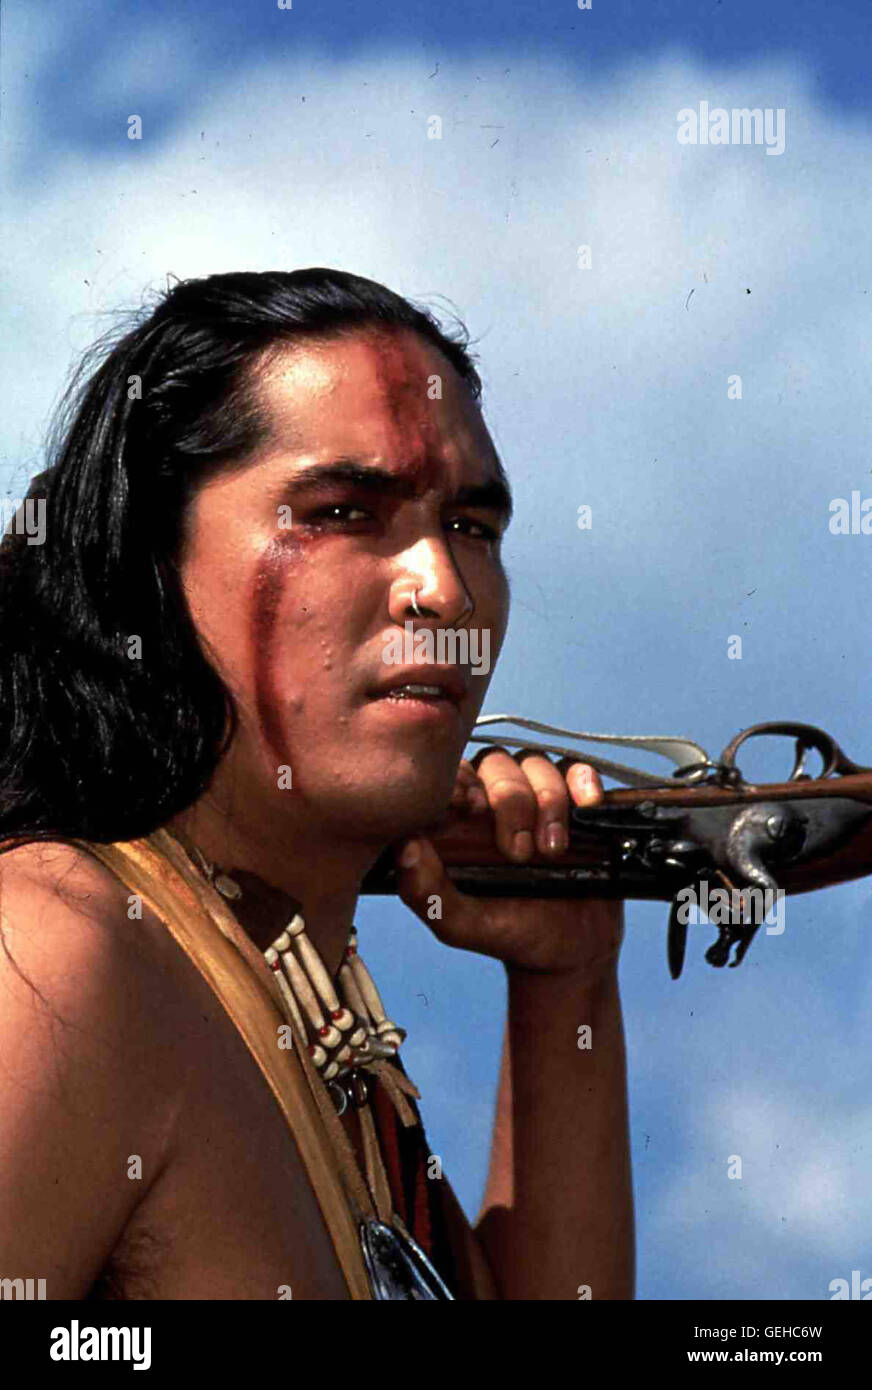 Eric Schweig High Resolution Stock Photography And Images Alamy In fact i created this slideshow for myself only, but then i thought some people could enjoy it either. alamy